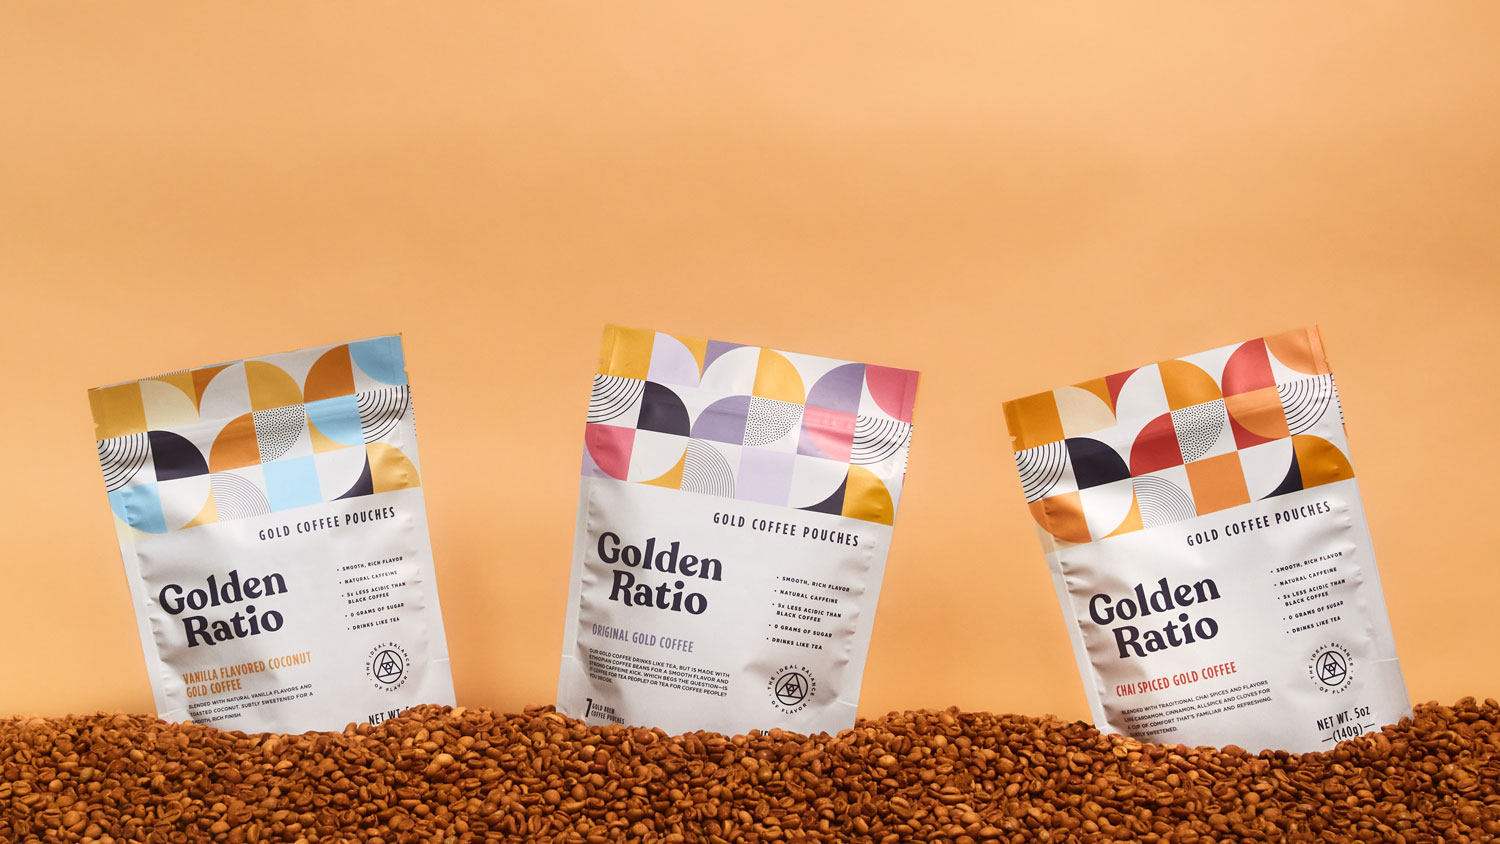 Golden Ratio coffee bags